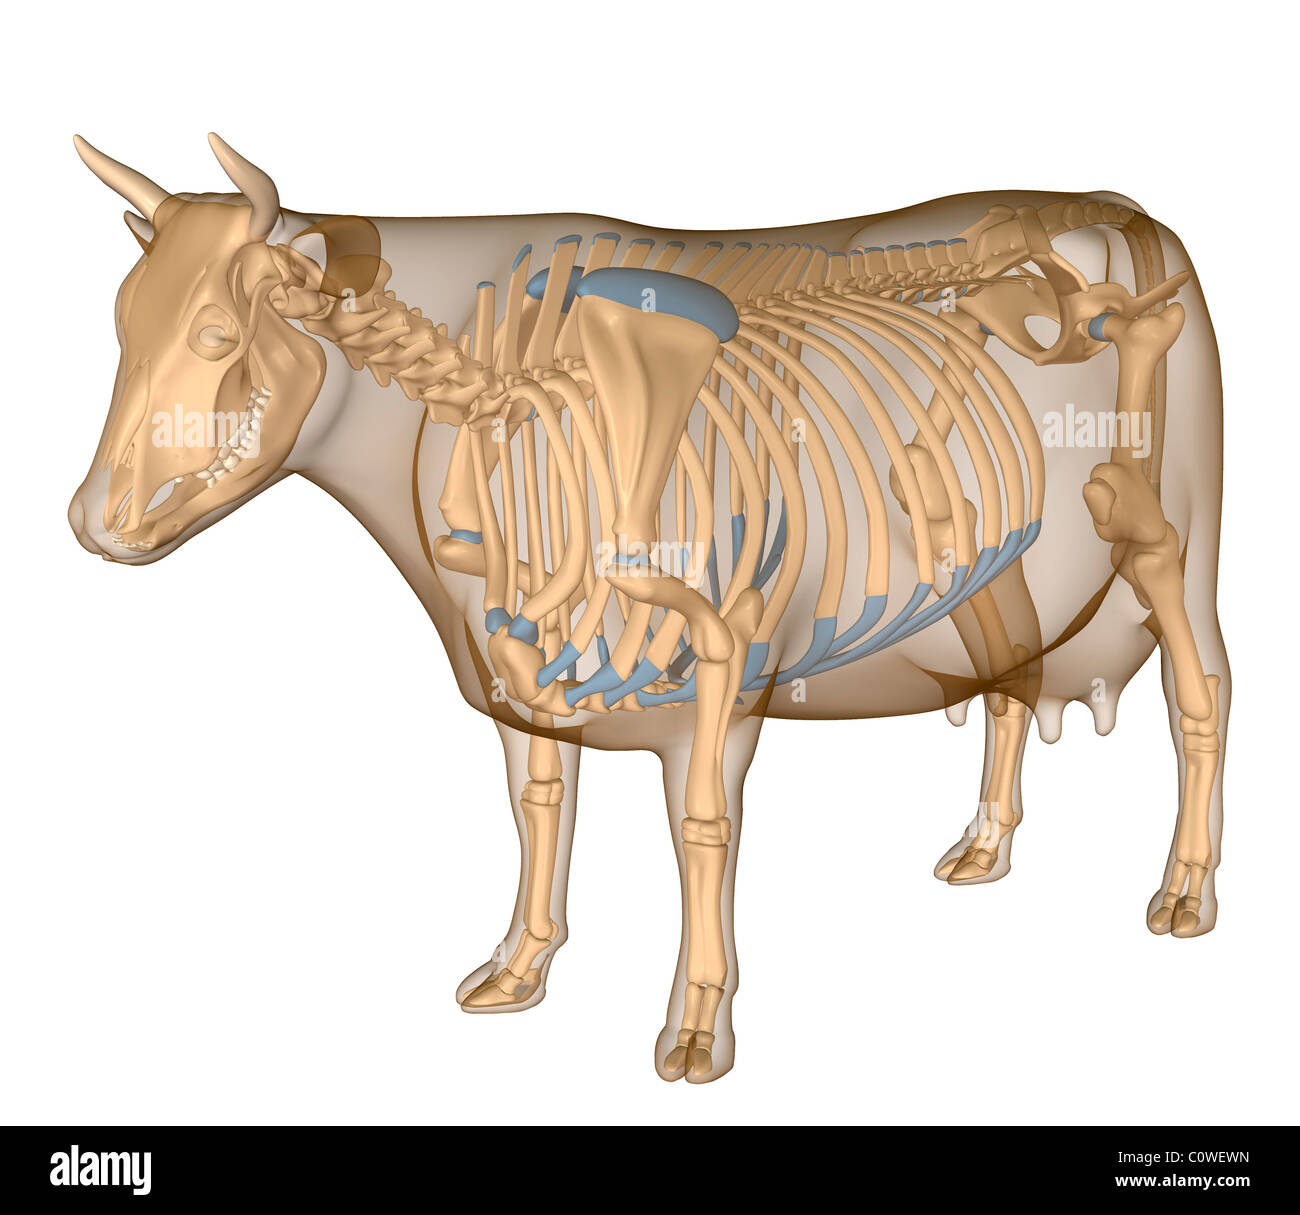 hight resolution of anatomy of the cow skeleton stock image